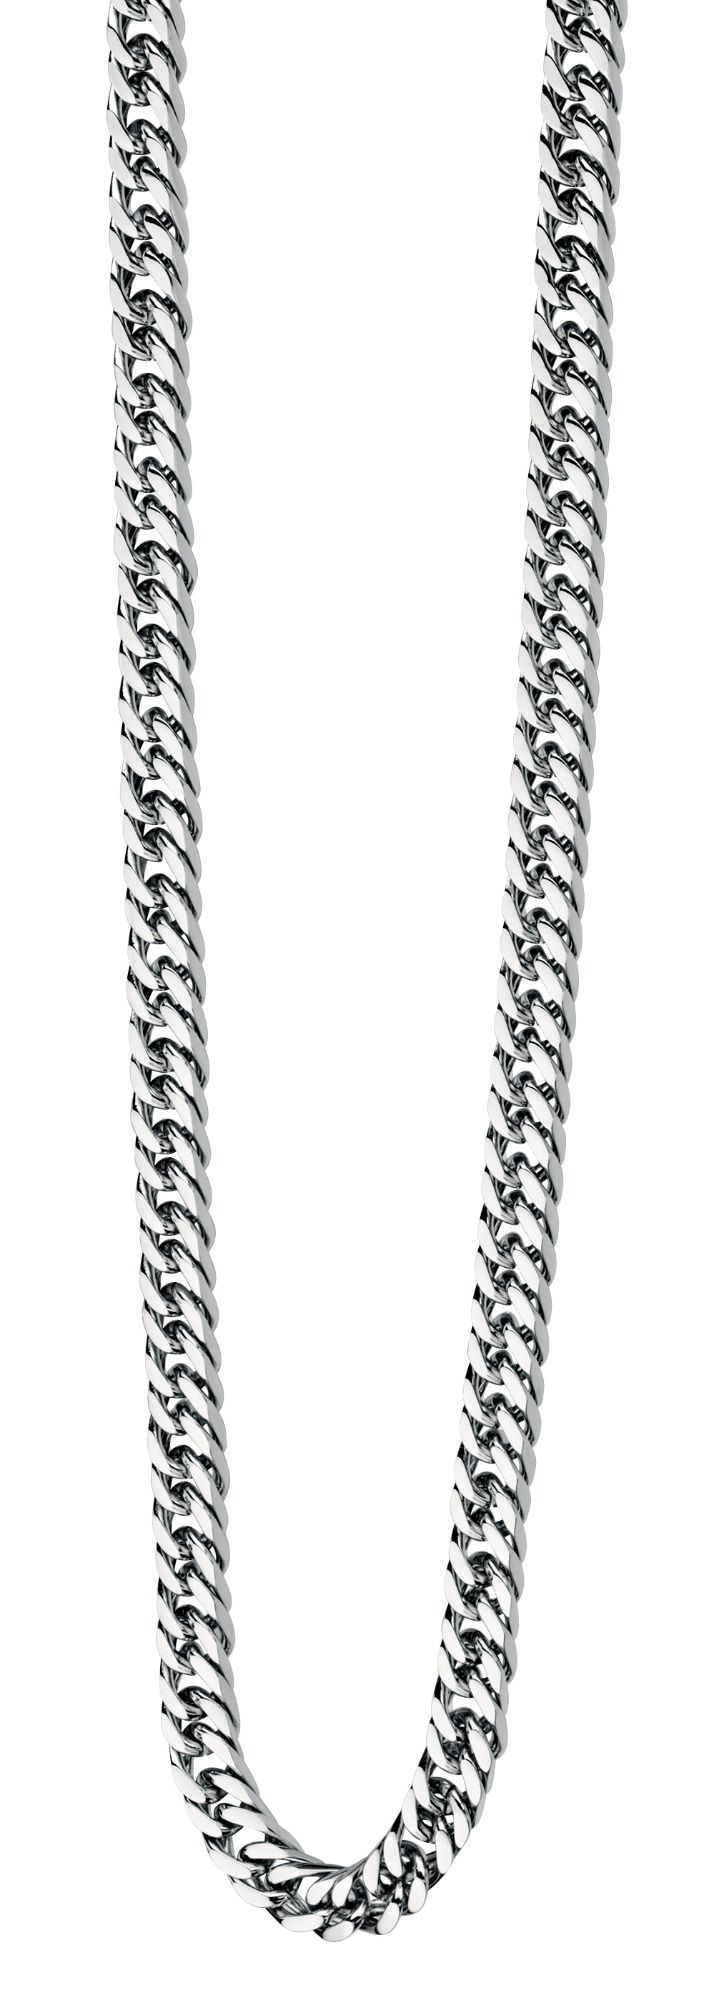 MEN'S HEAVY FLAT CURB CHAIN IN STAINLESS STEEL